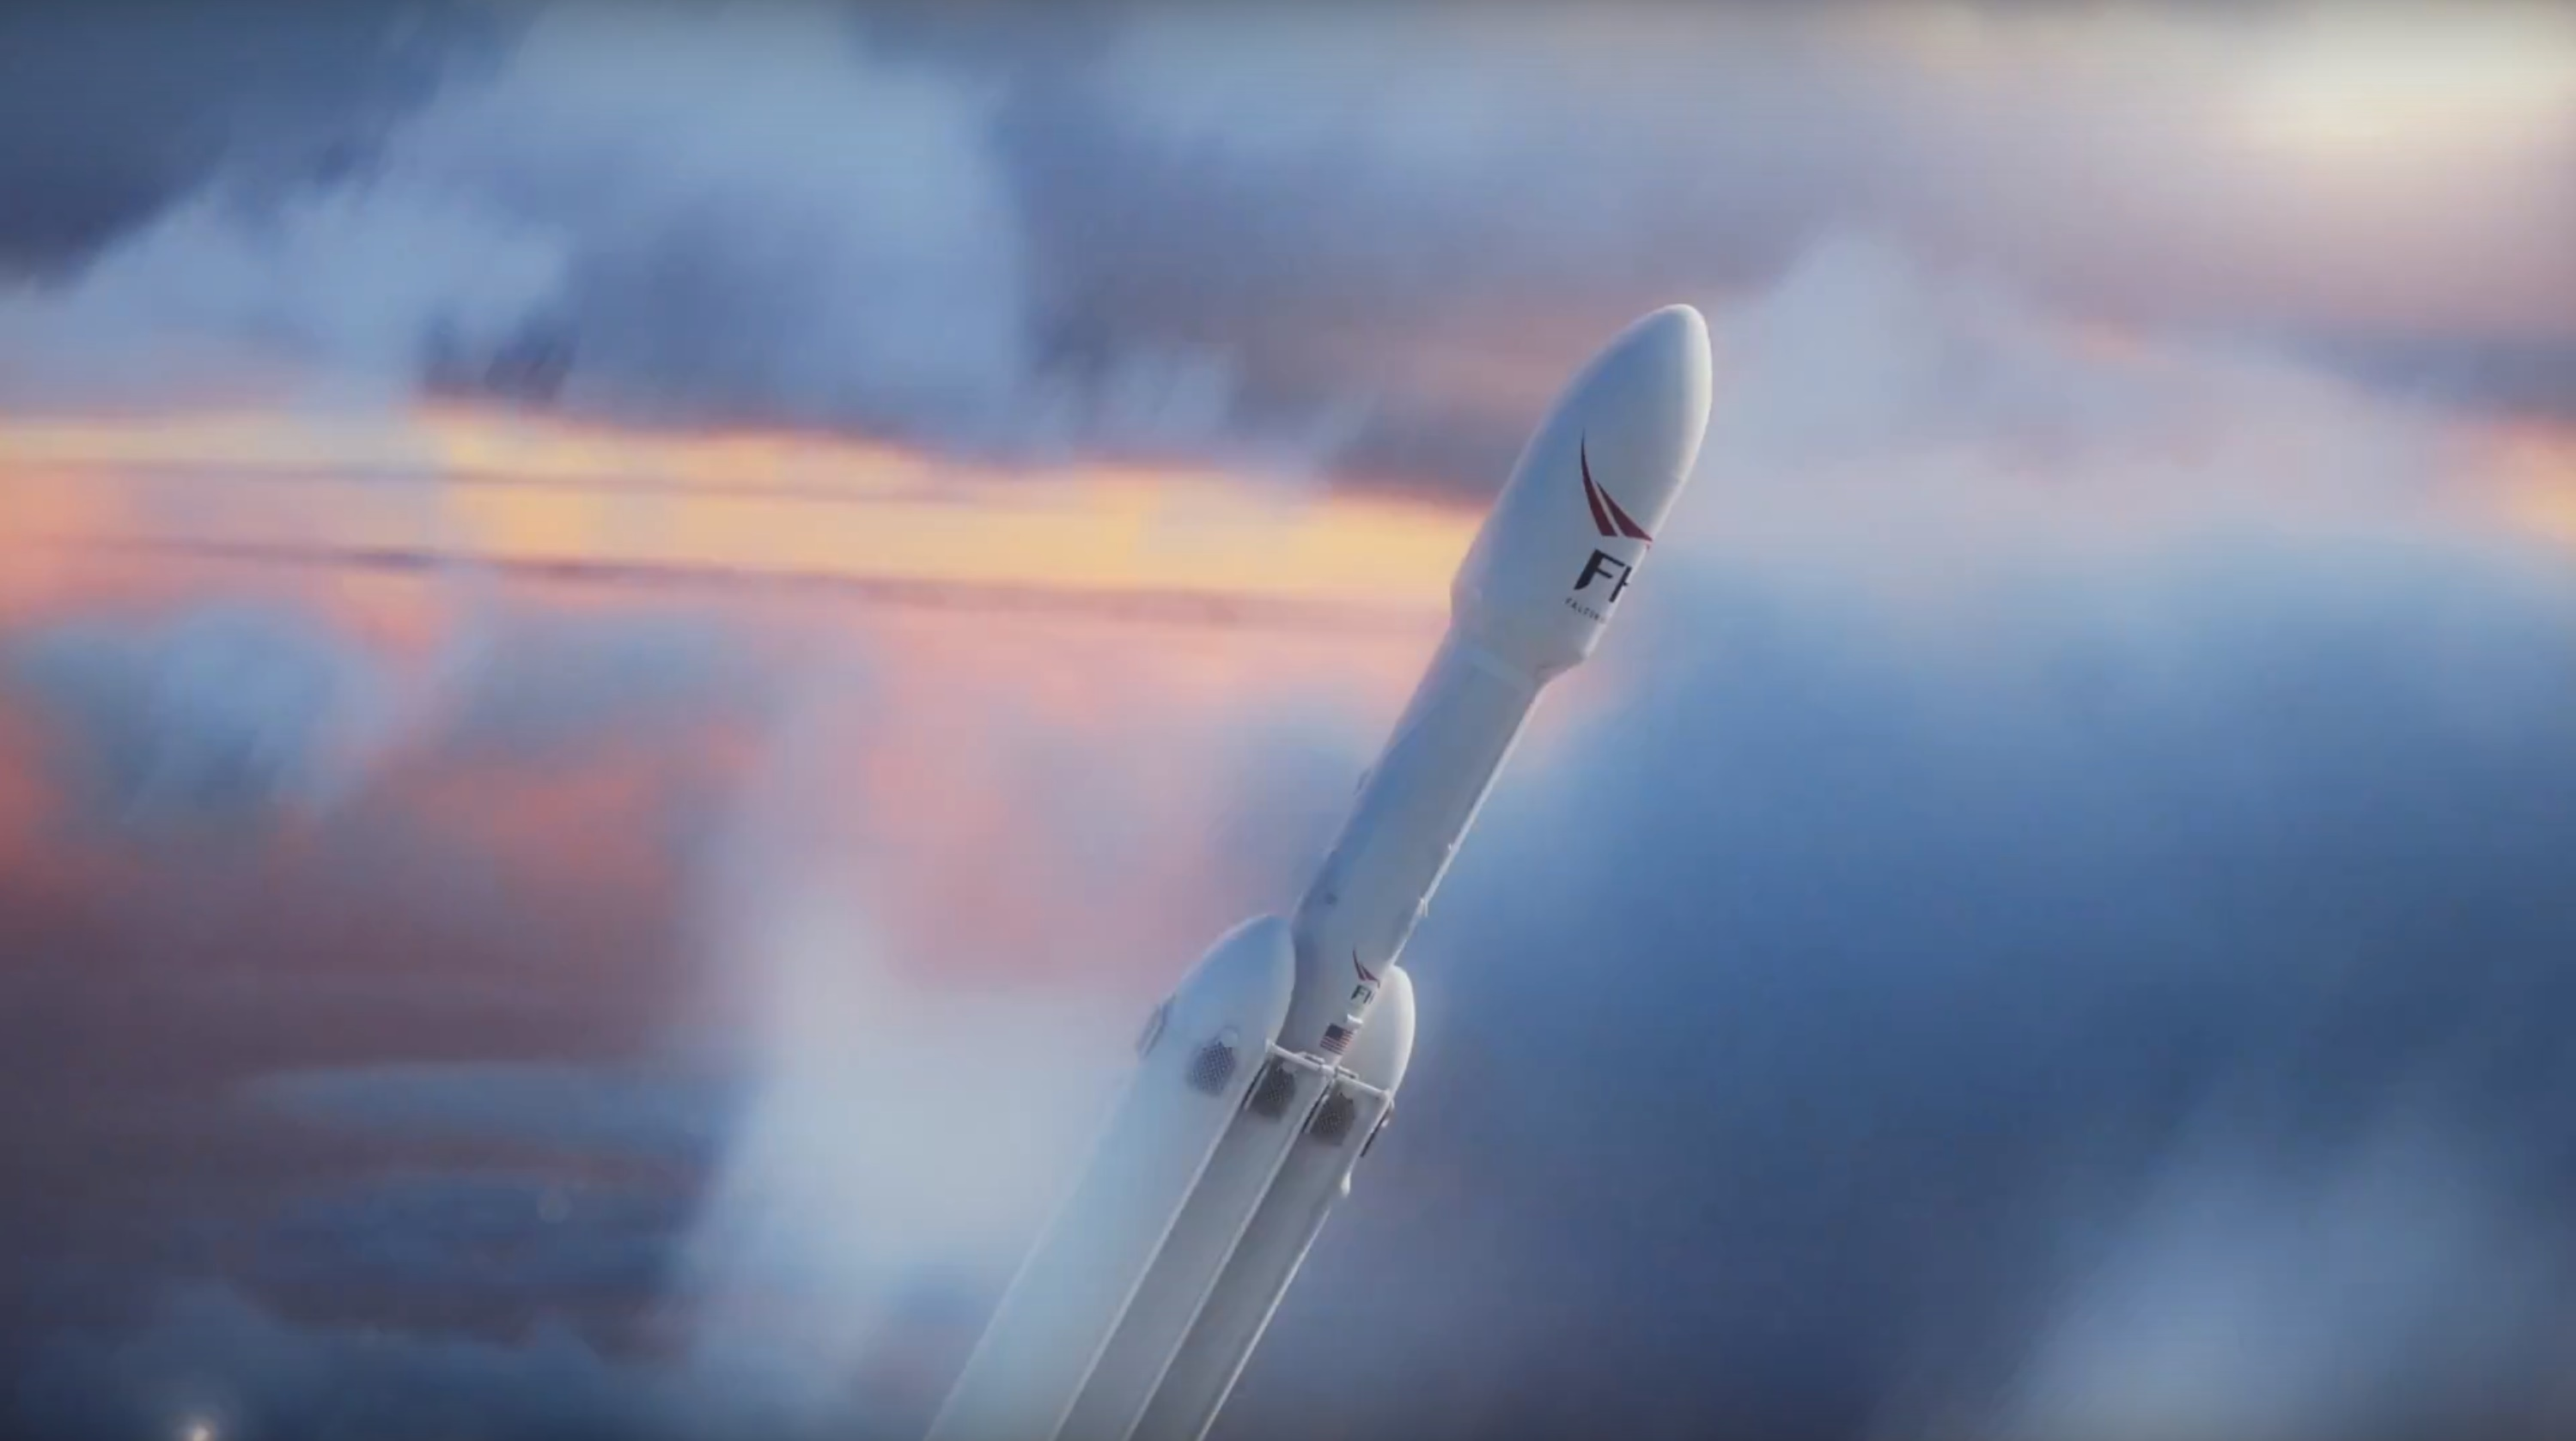 FH launch render (SpaceX)